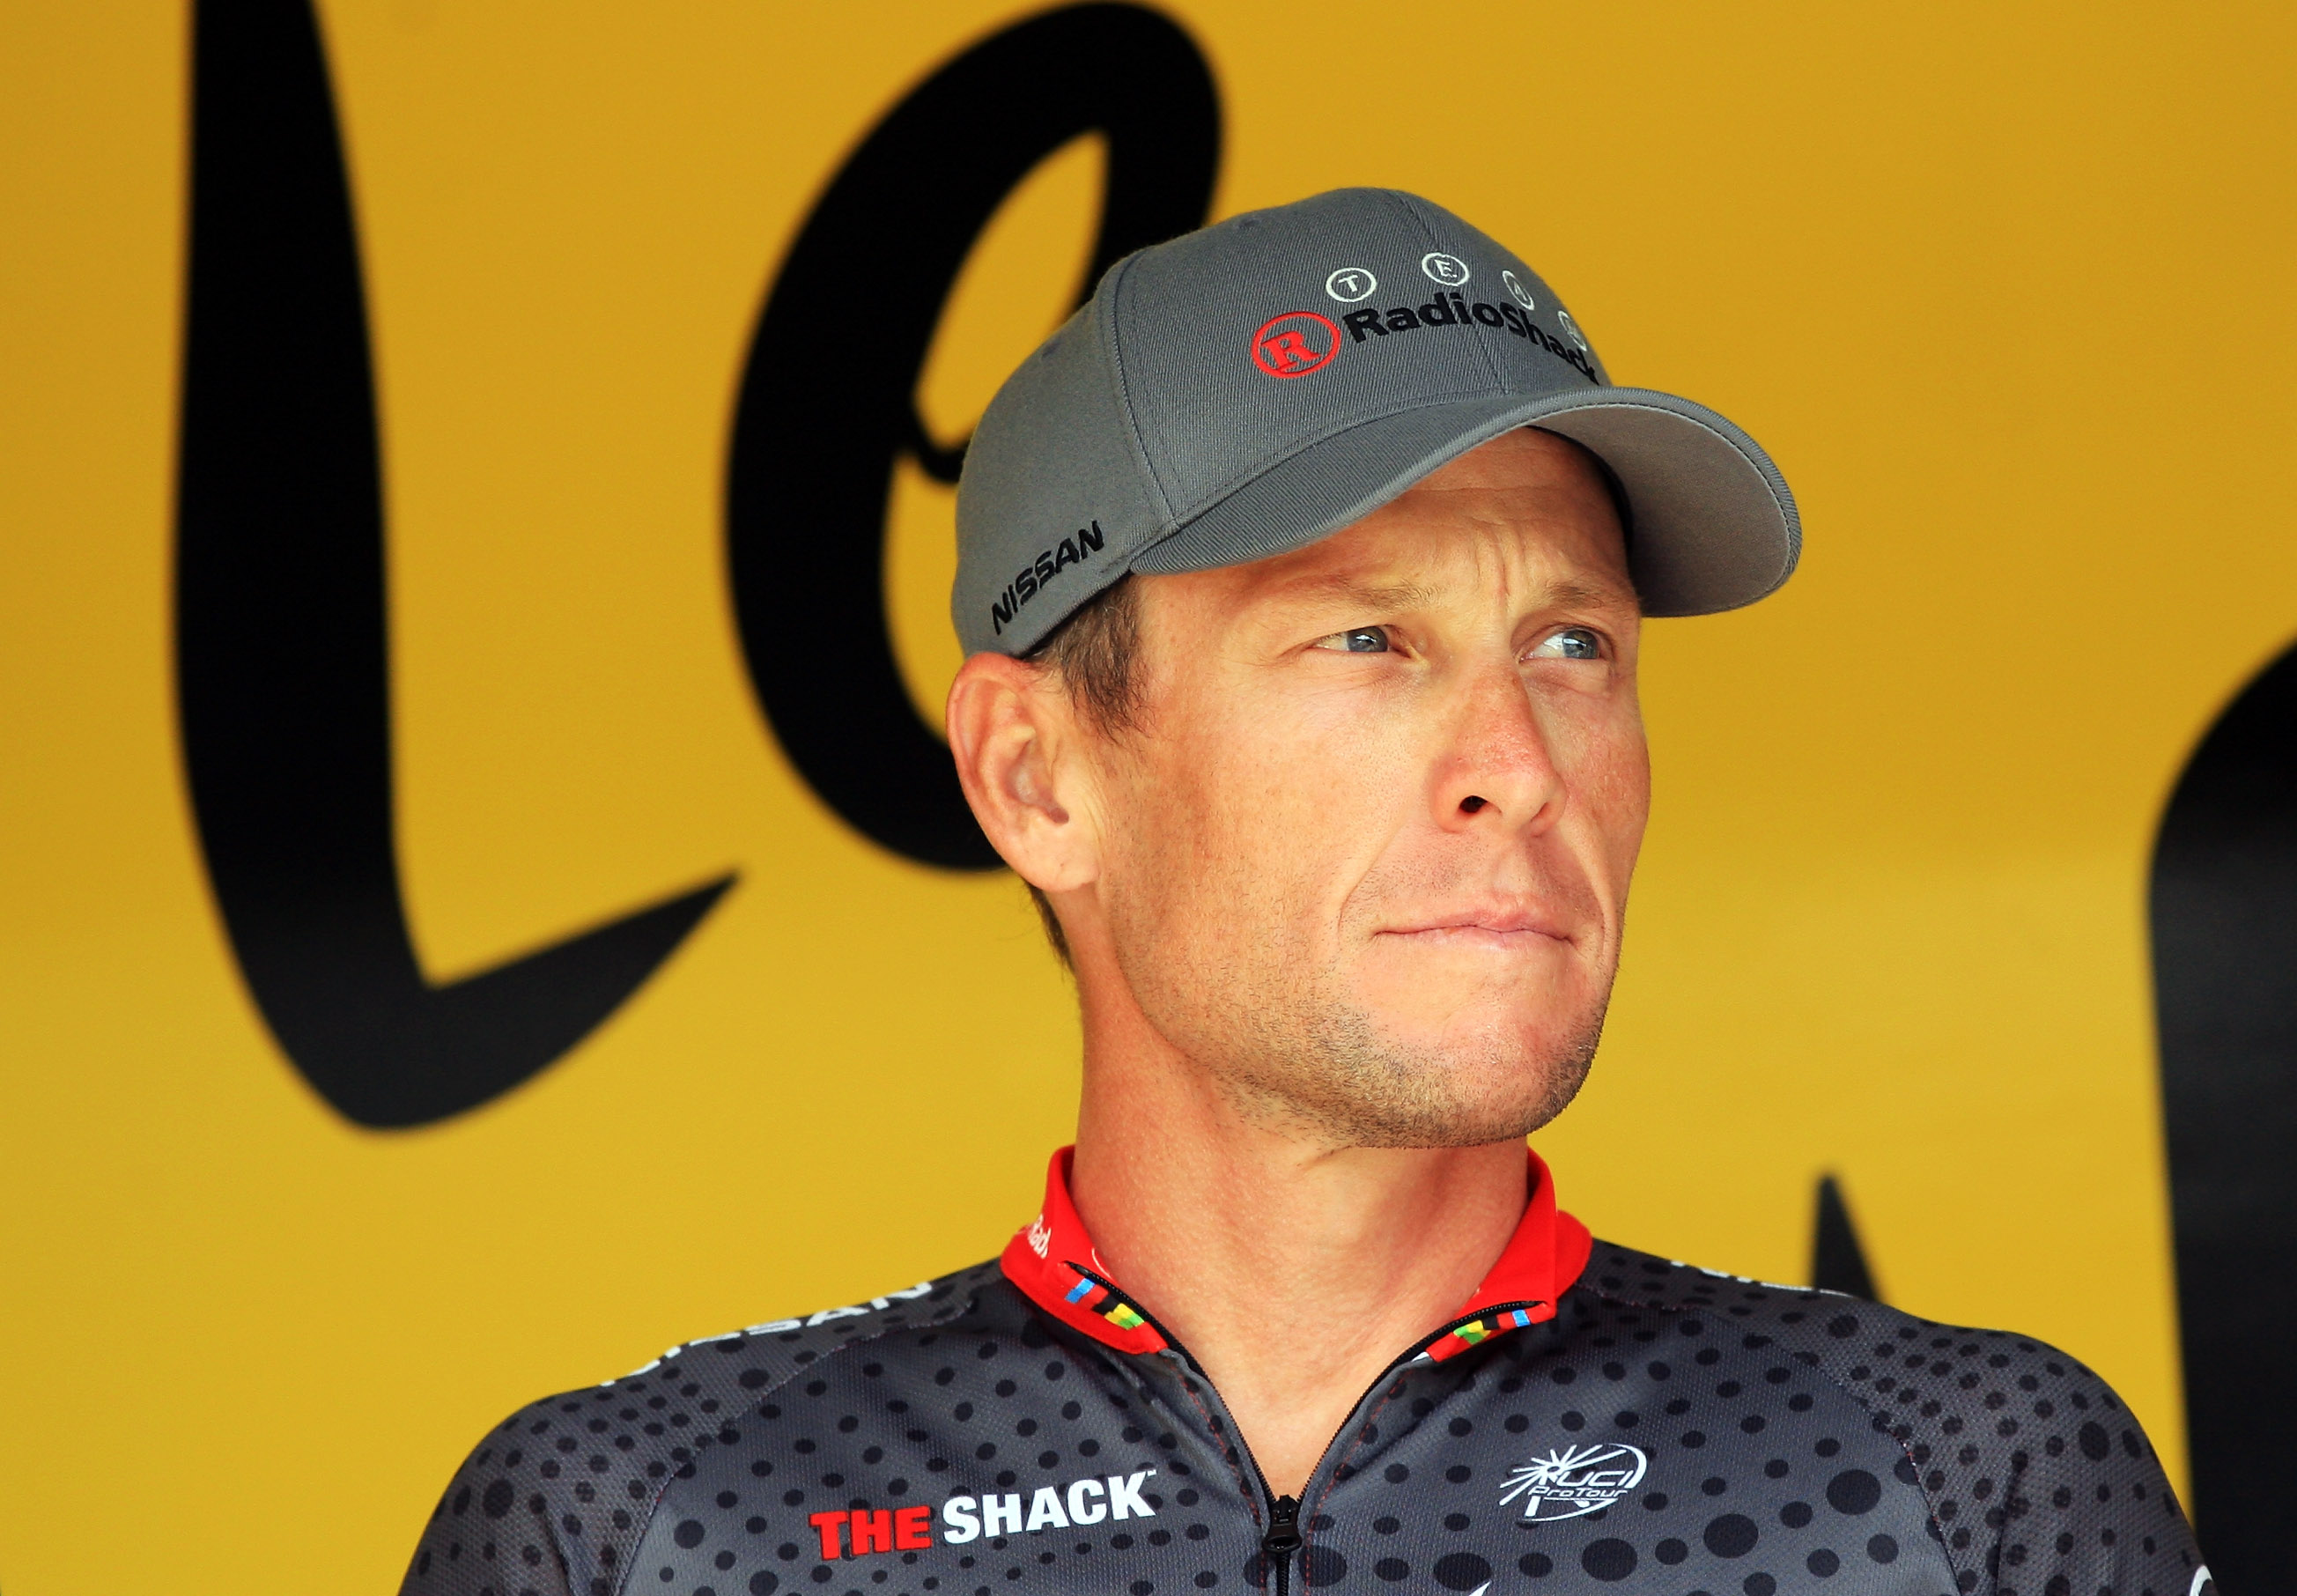 Lance Armstrong during stage twelve of the 2010 Tour de France from  Rodez to Revel on July 17, 2010 in Revel, France.